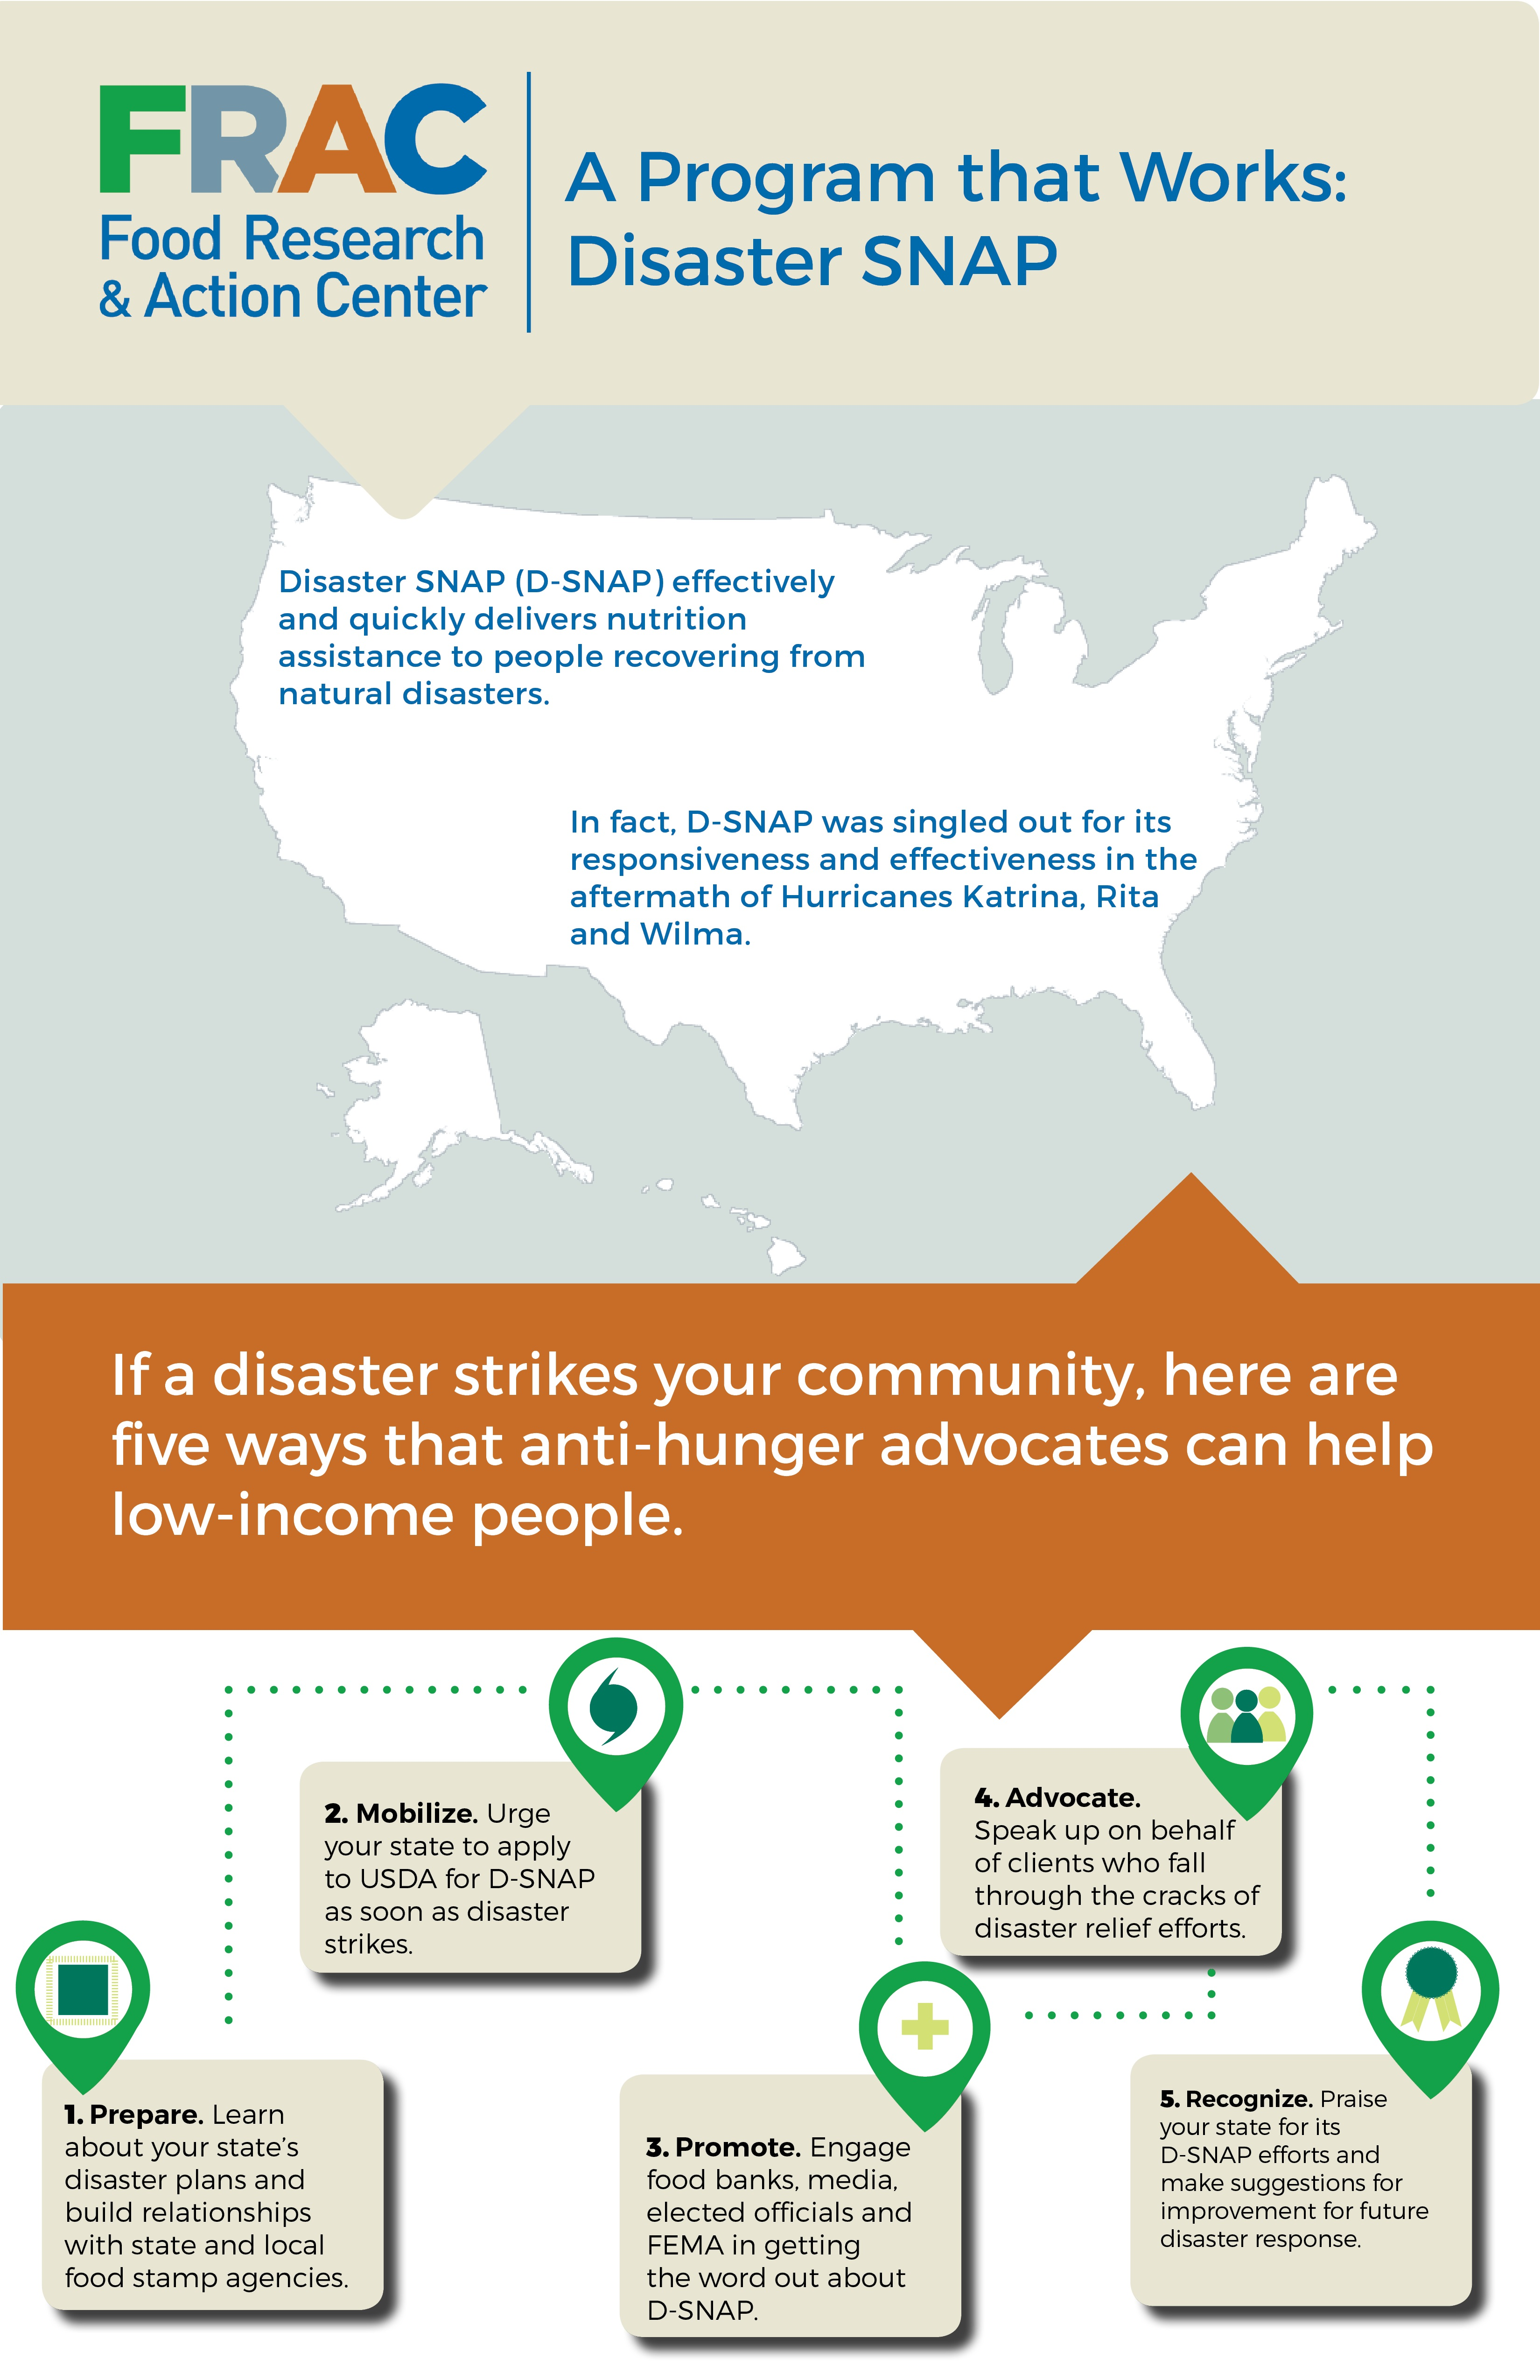 Includes 5 Ways Antihunger Advocates Can Help Lowincome People In A  Disaster